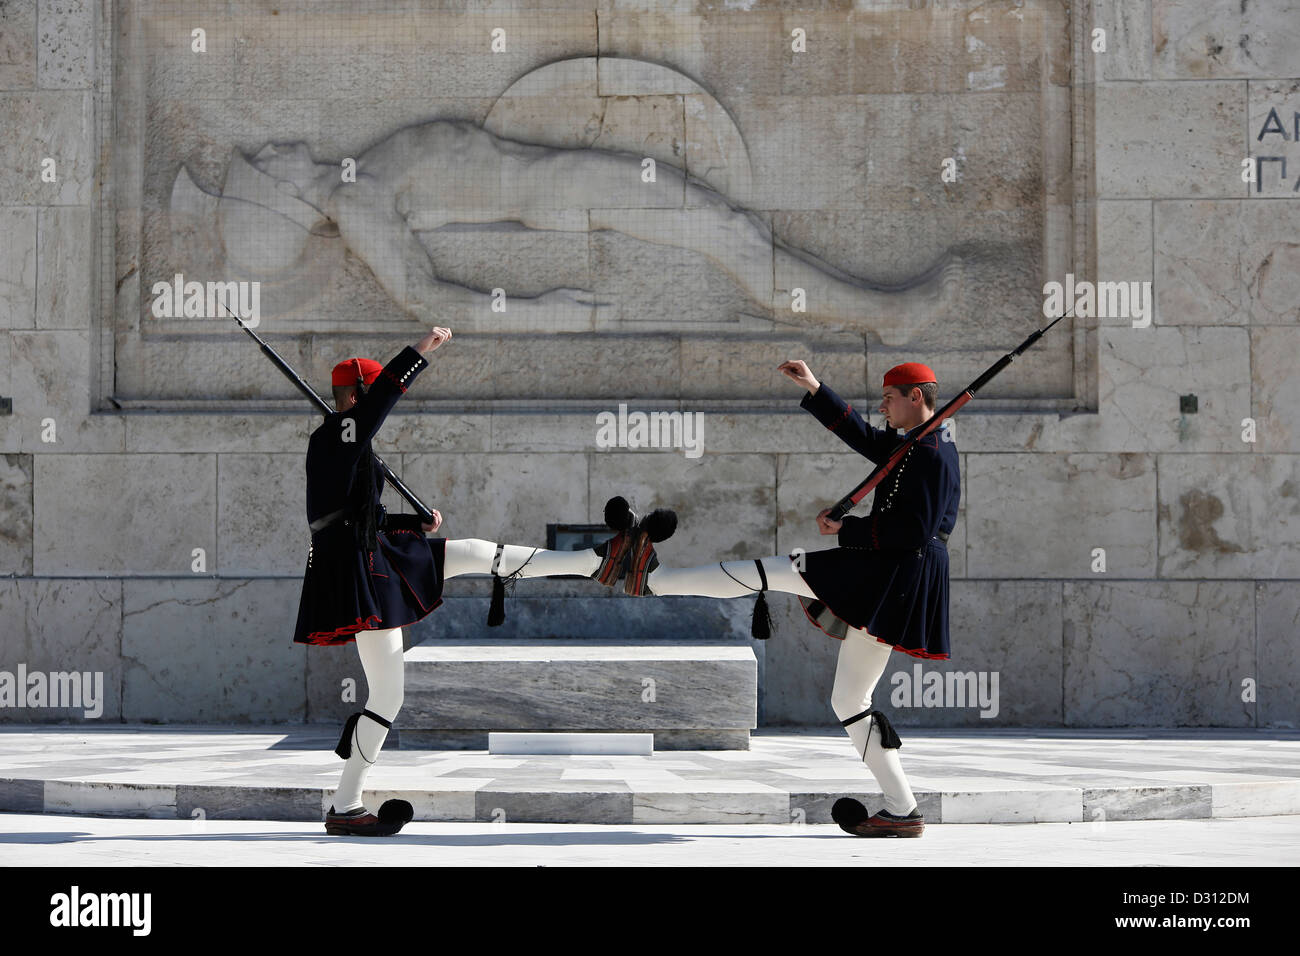 Presidential Guards (Evzones) performing in front of the Tomb of the Unknown Soldier, Athens, Greece. - Stock Image